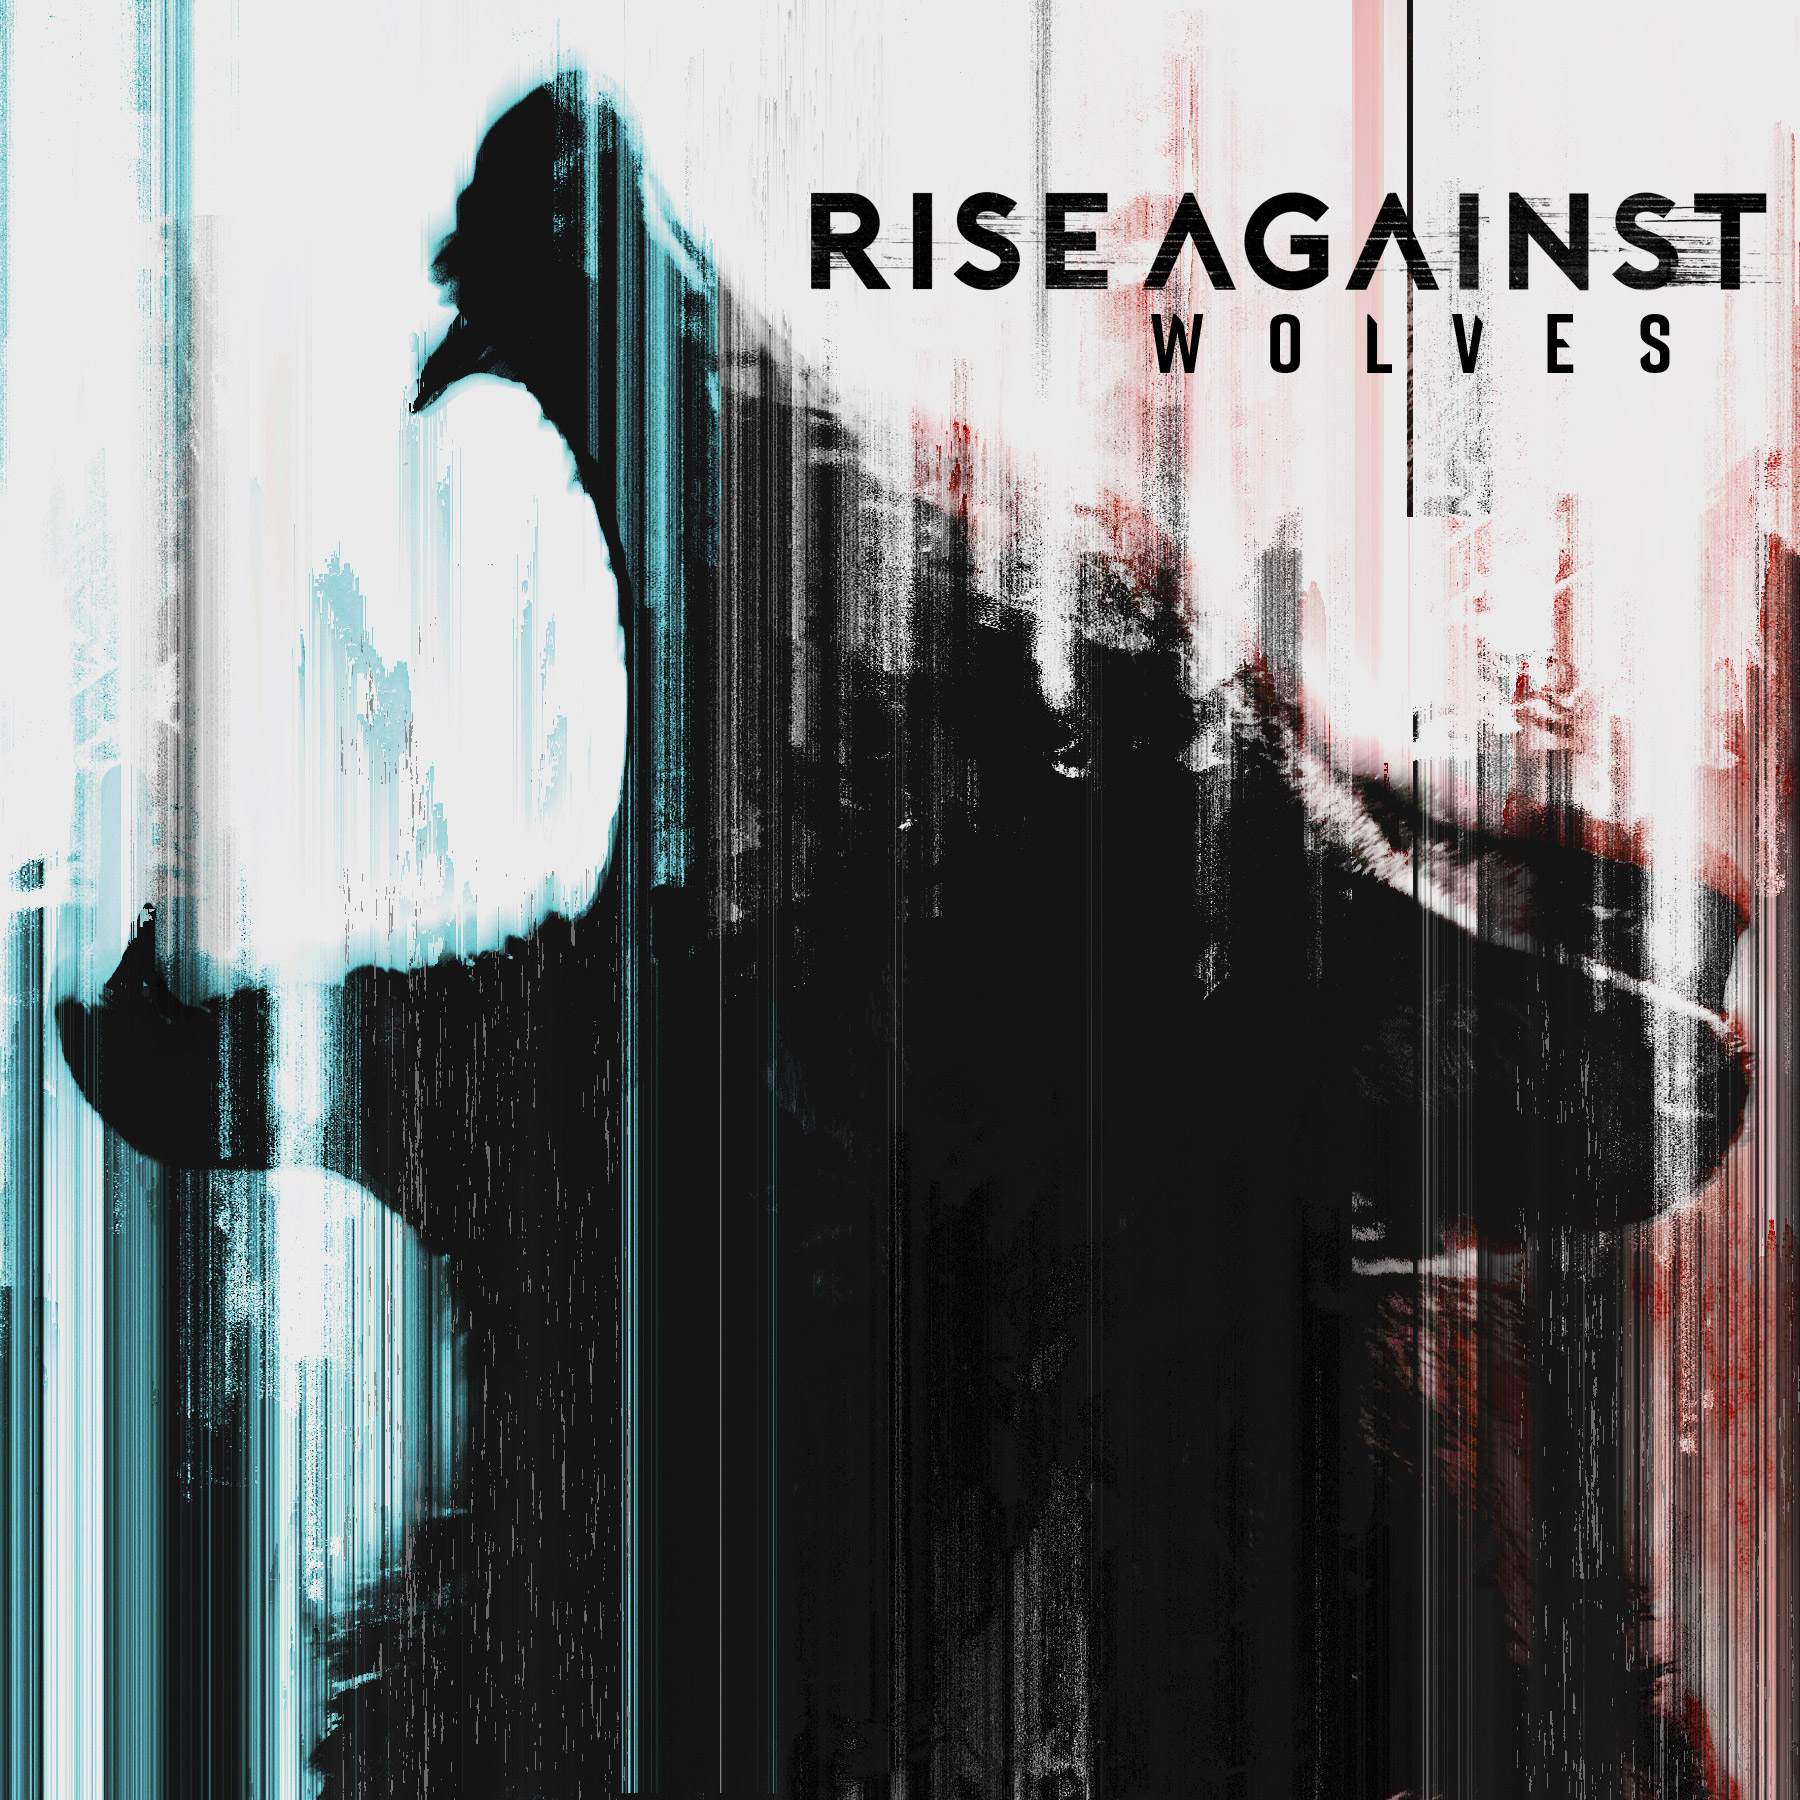 rise_against_wolves_final.jpg